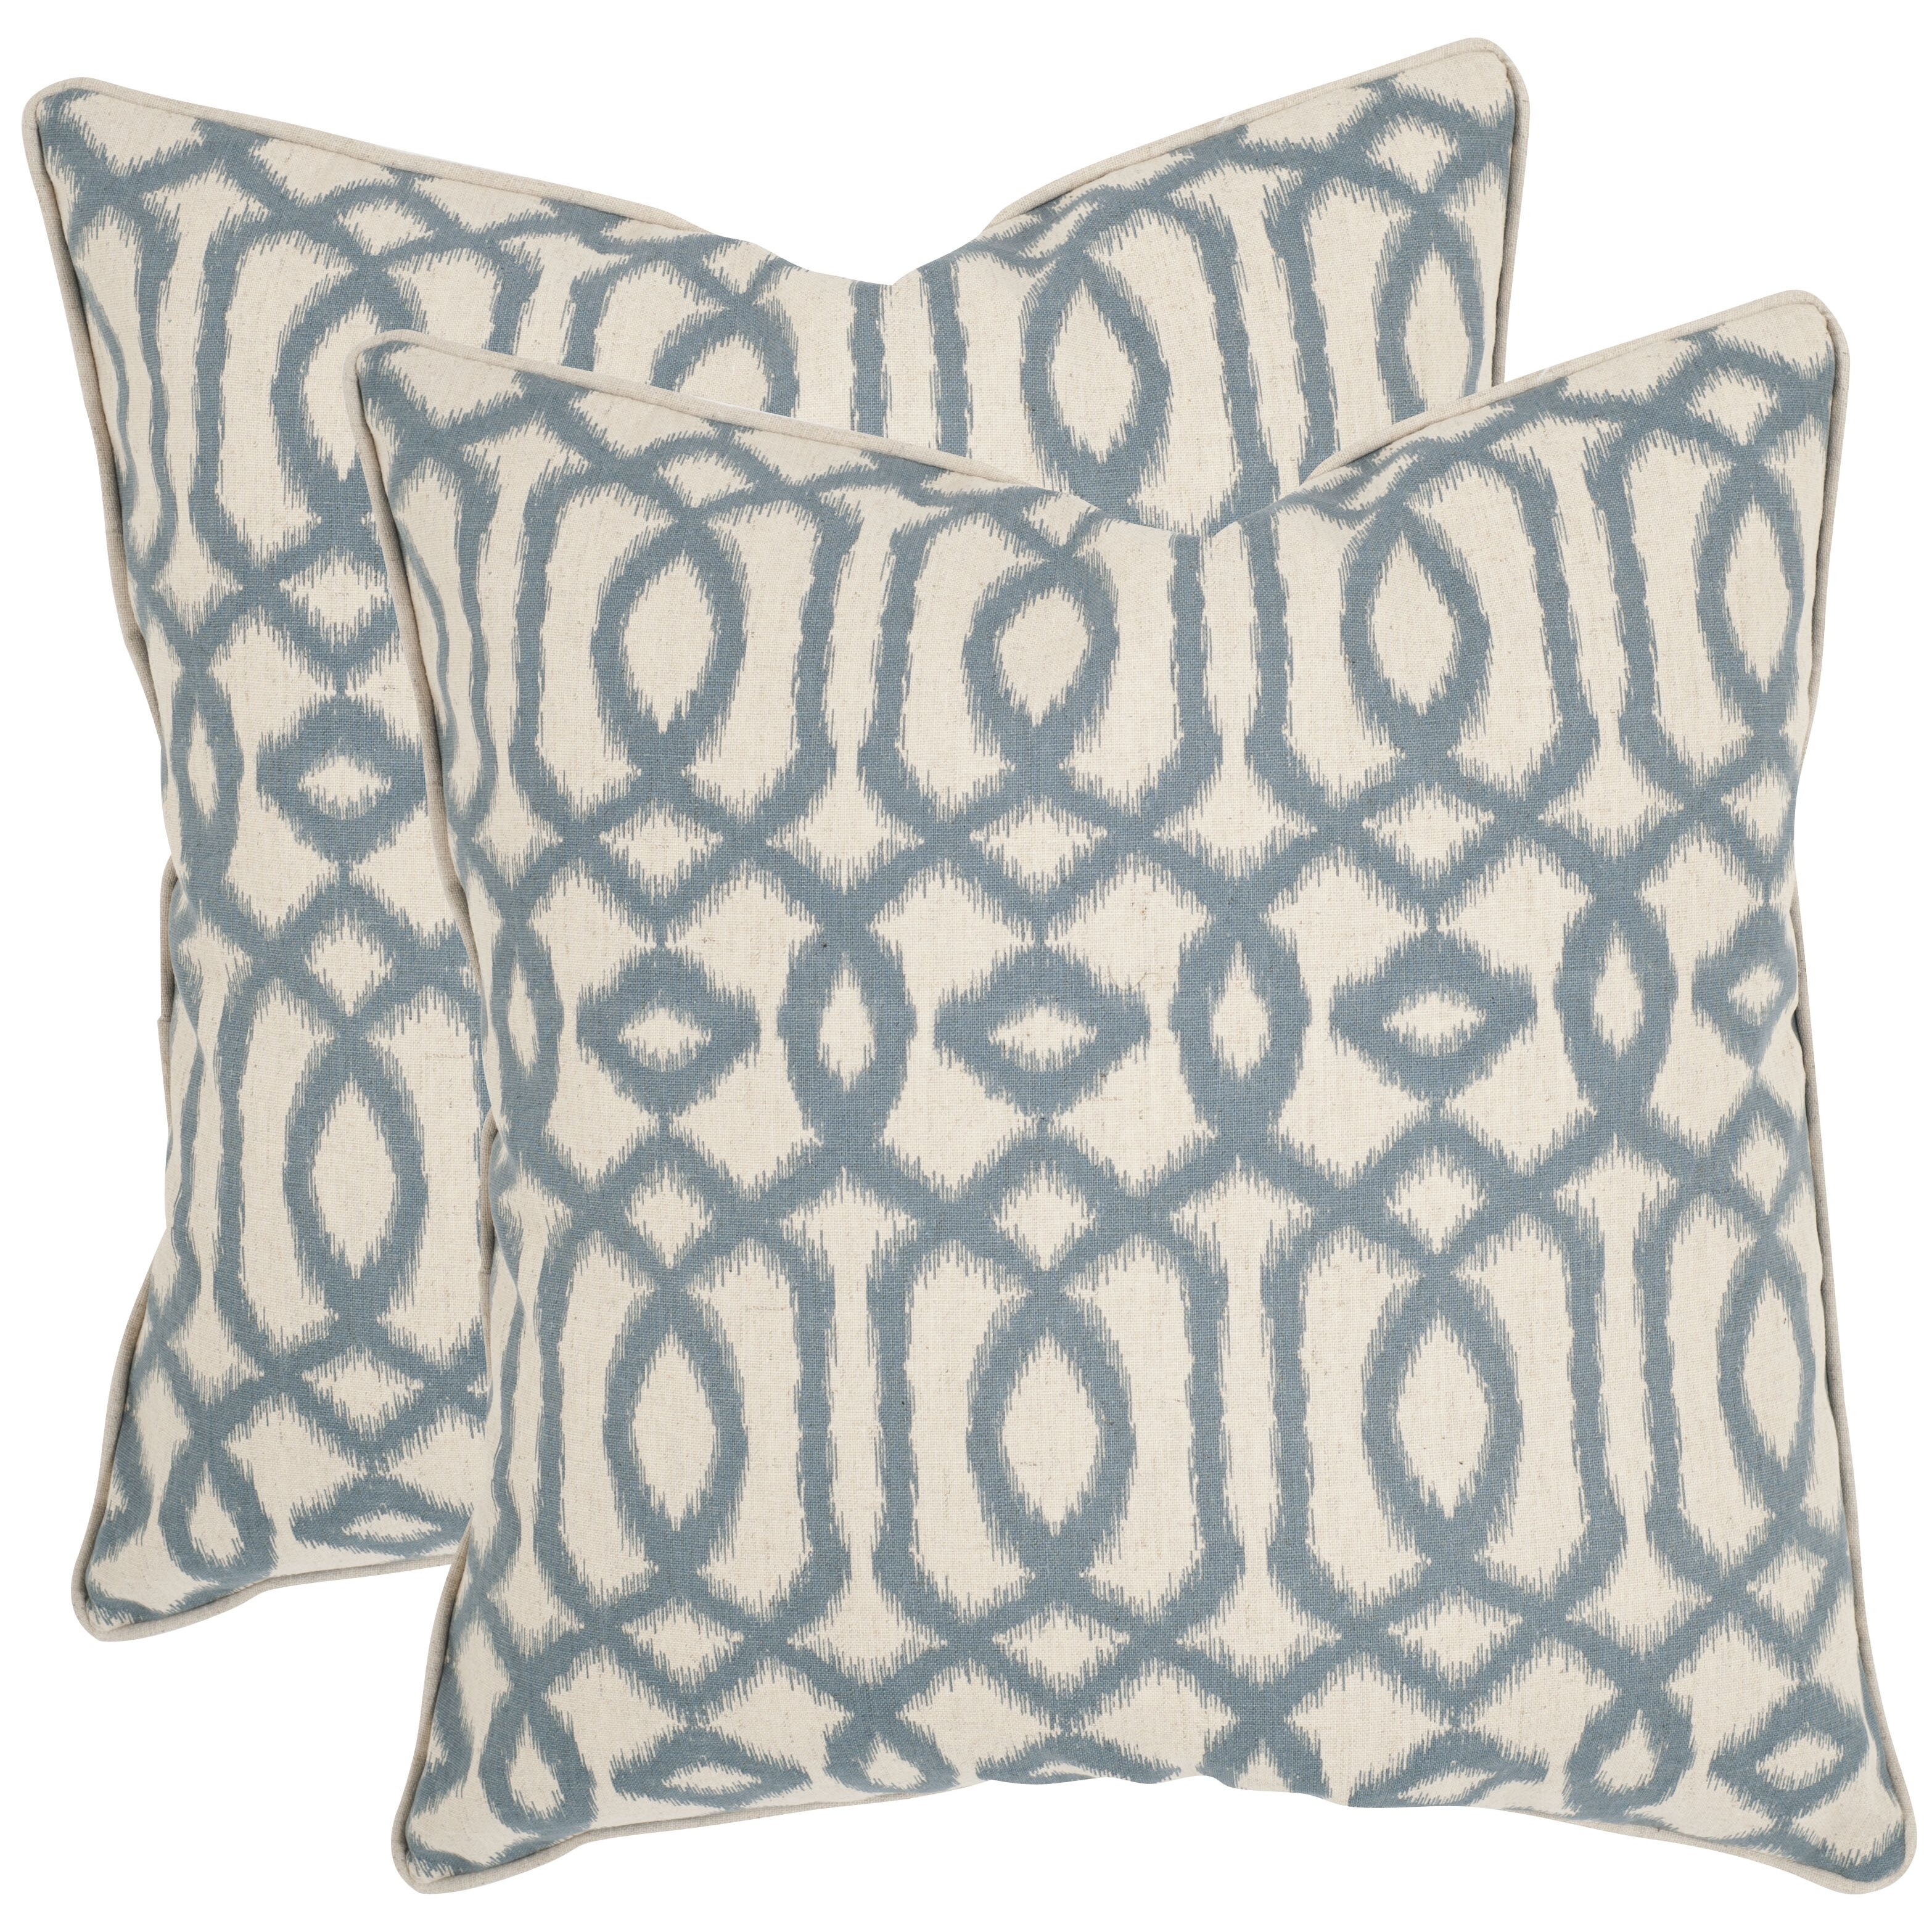 Throw Blanket And Decorative Pillow Set : Safavieh Blake Throw Pillow & Reviews Wayfair